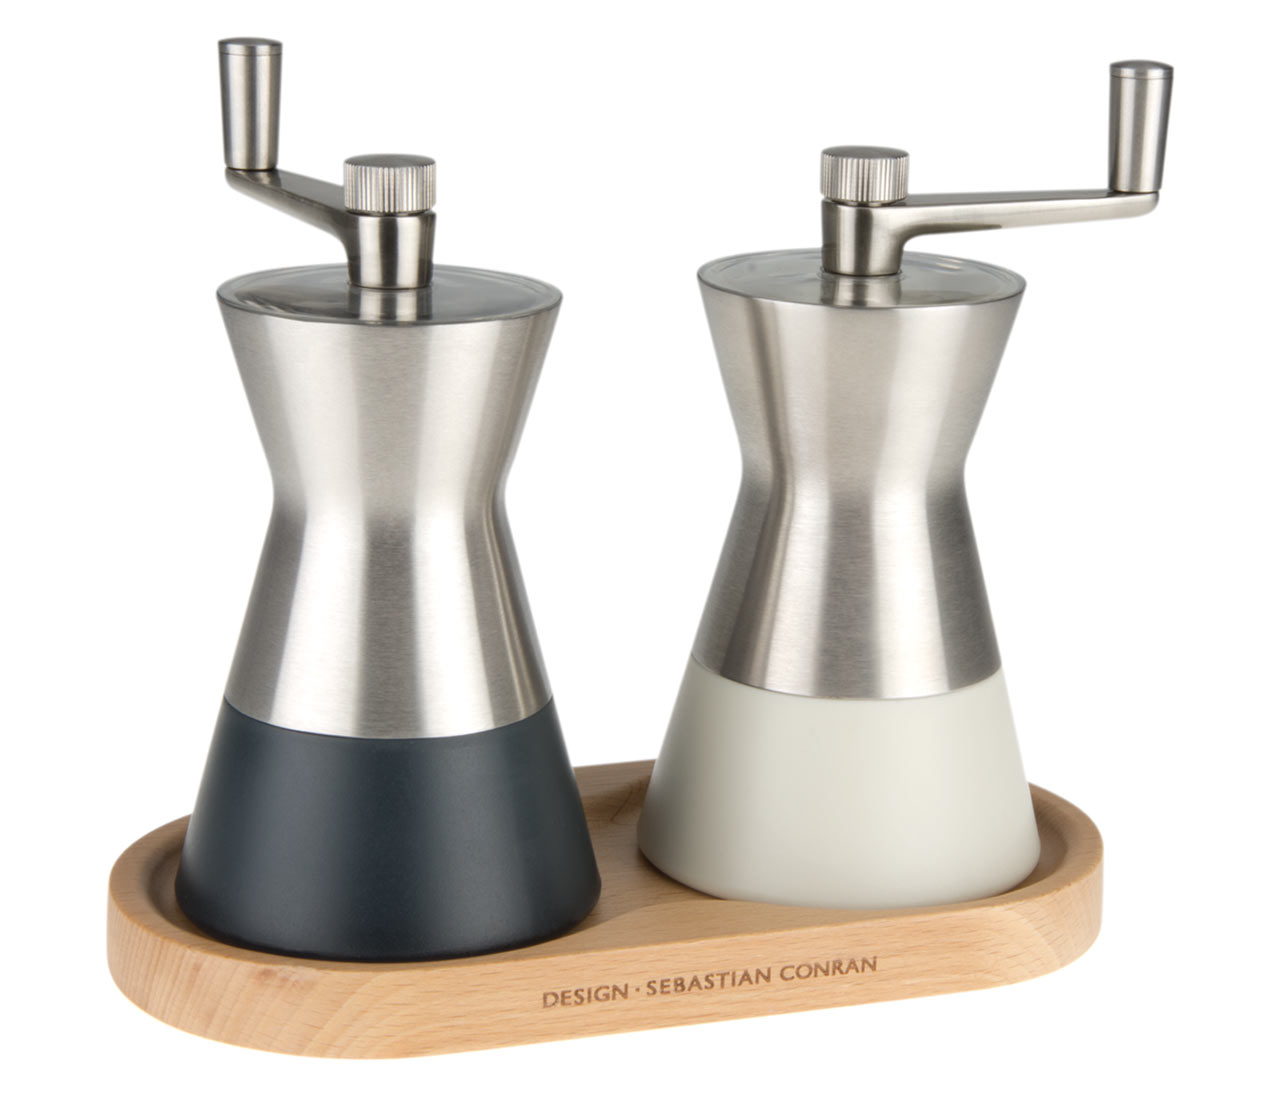 Beautility-Sebastian-Conran-Universal-Expert-12-5030Pepper_and_salt_mill_set